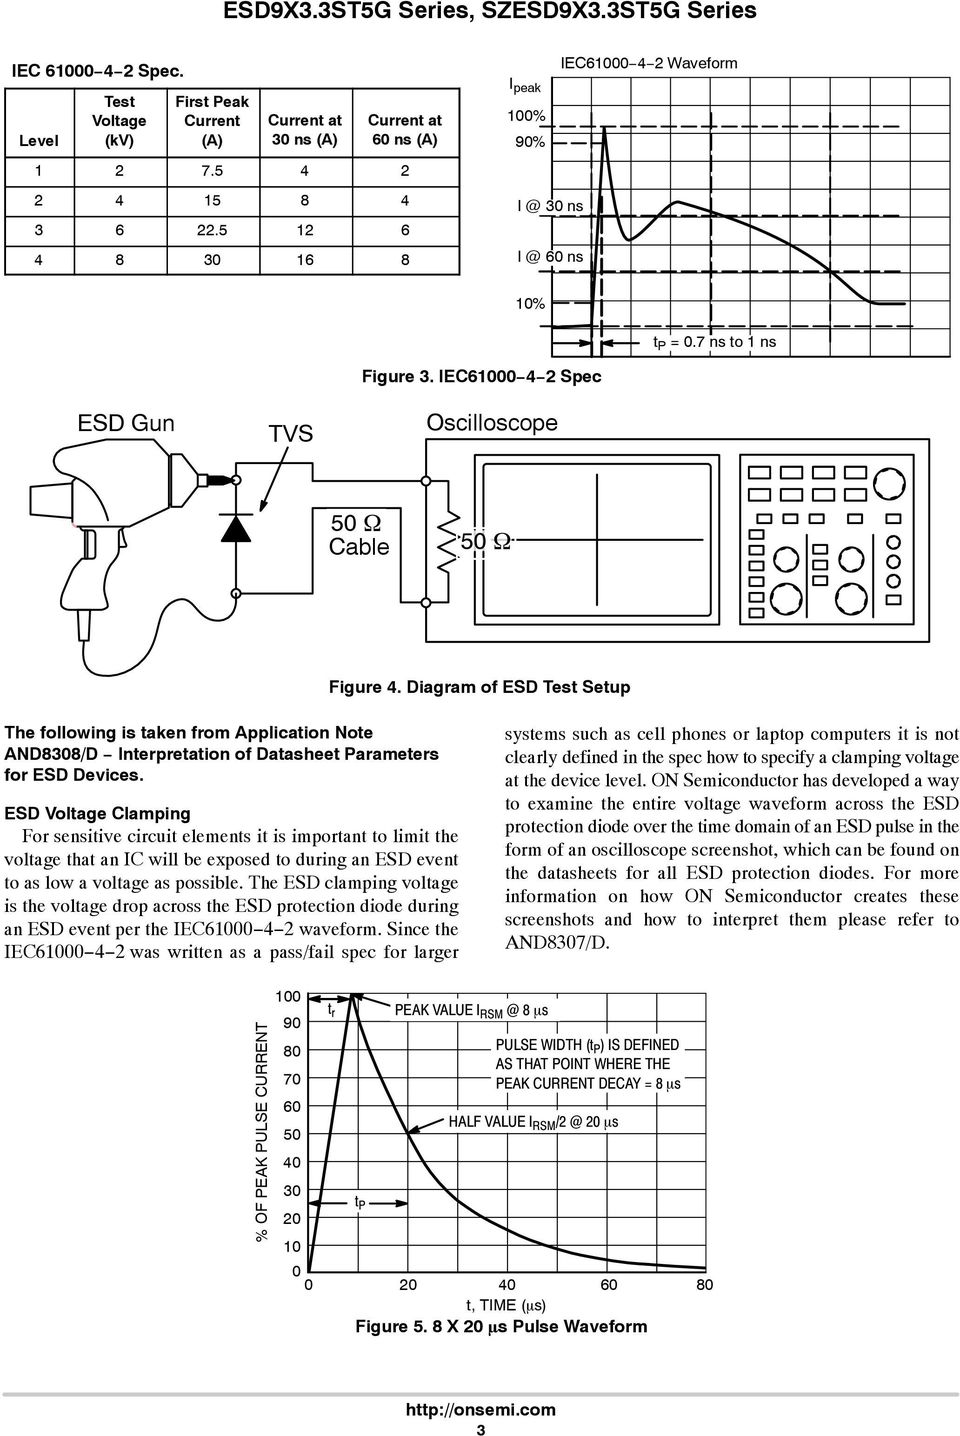 Diagram of ESD Test Setup The following is taken from Application Note AND8308/D Interpretation of Datasheet Parameters for ESD Devices.